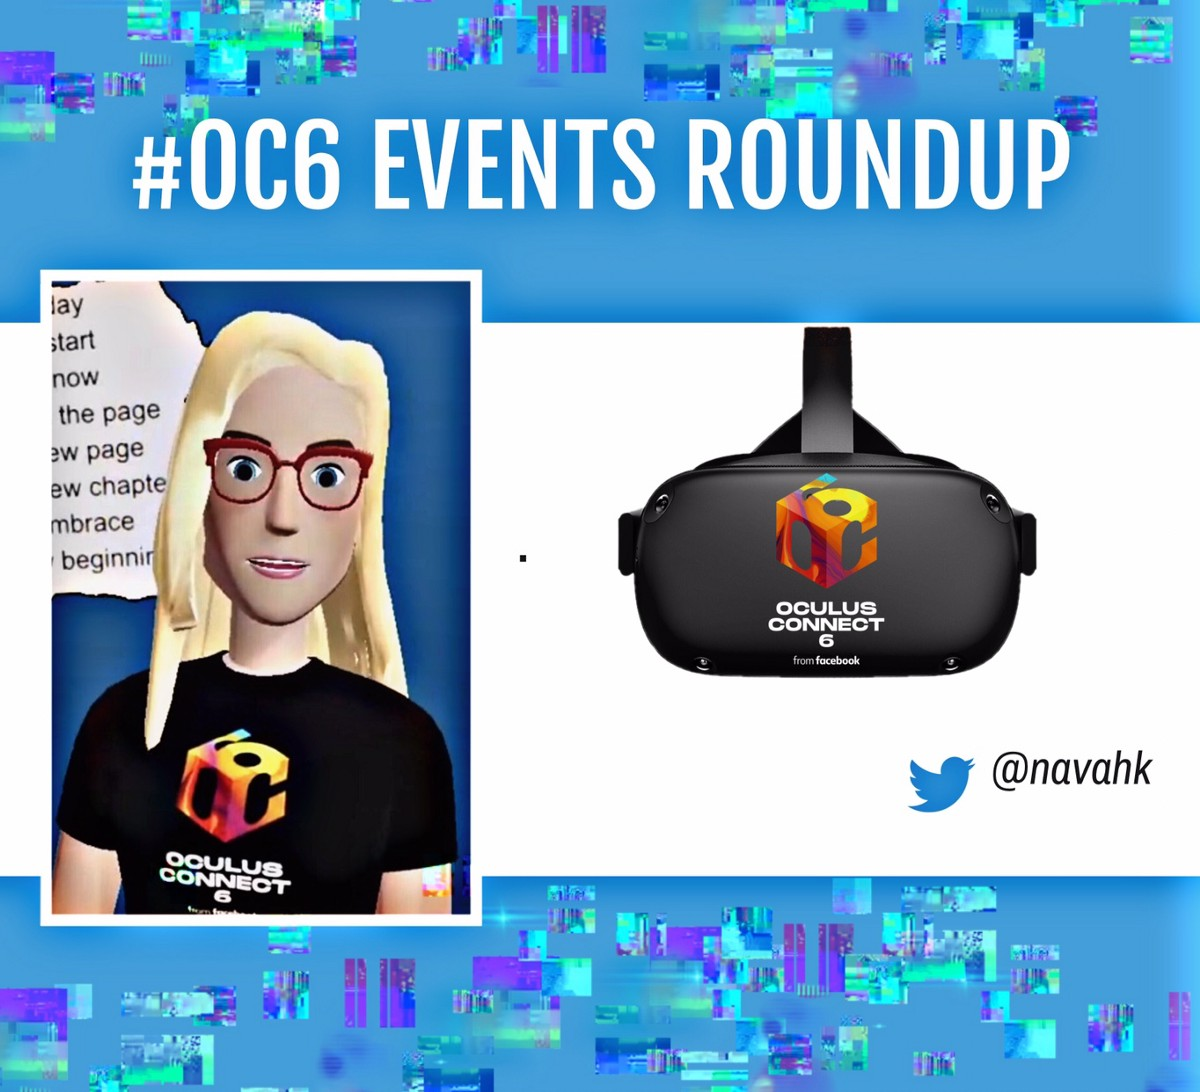 #OC6 Oculus Connect 6 Events Roundup